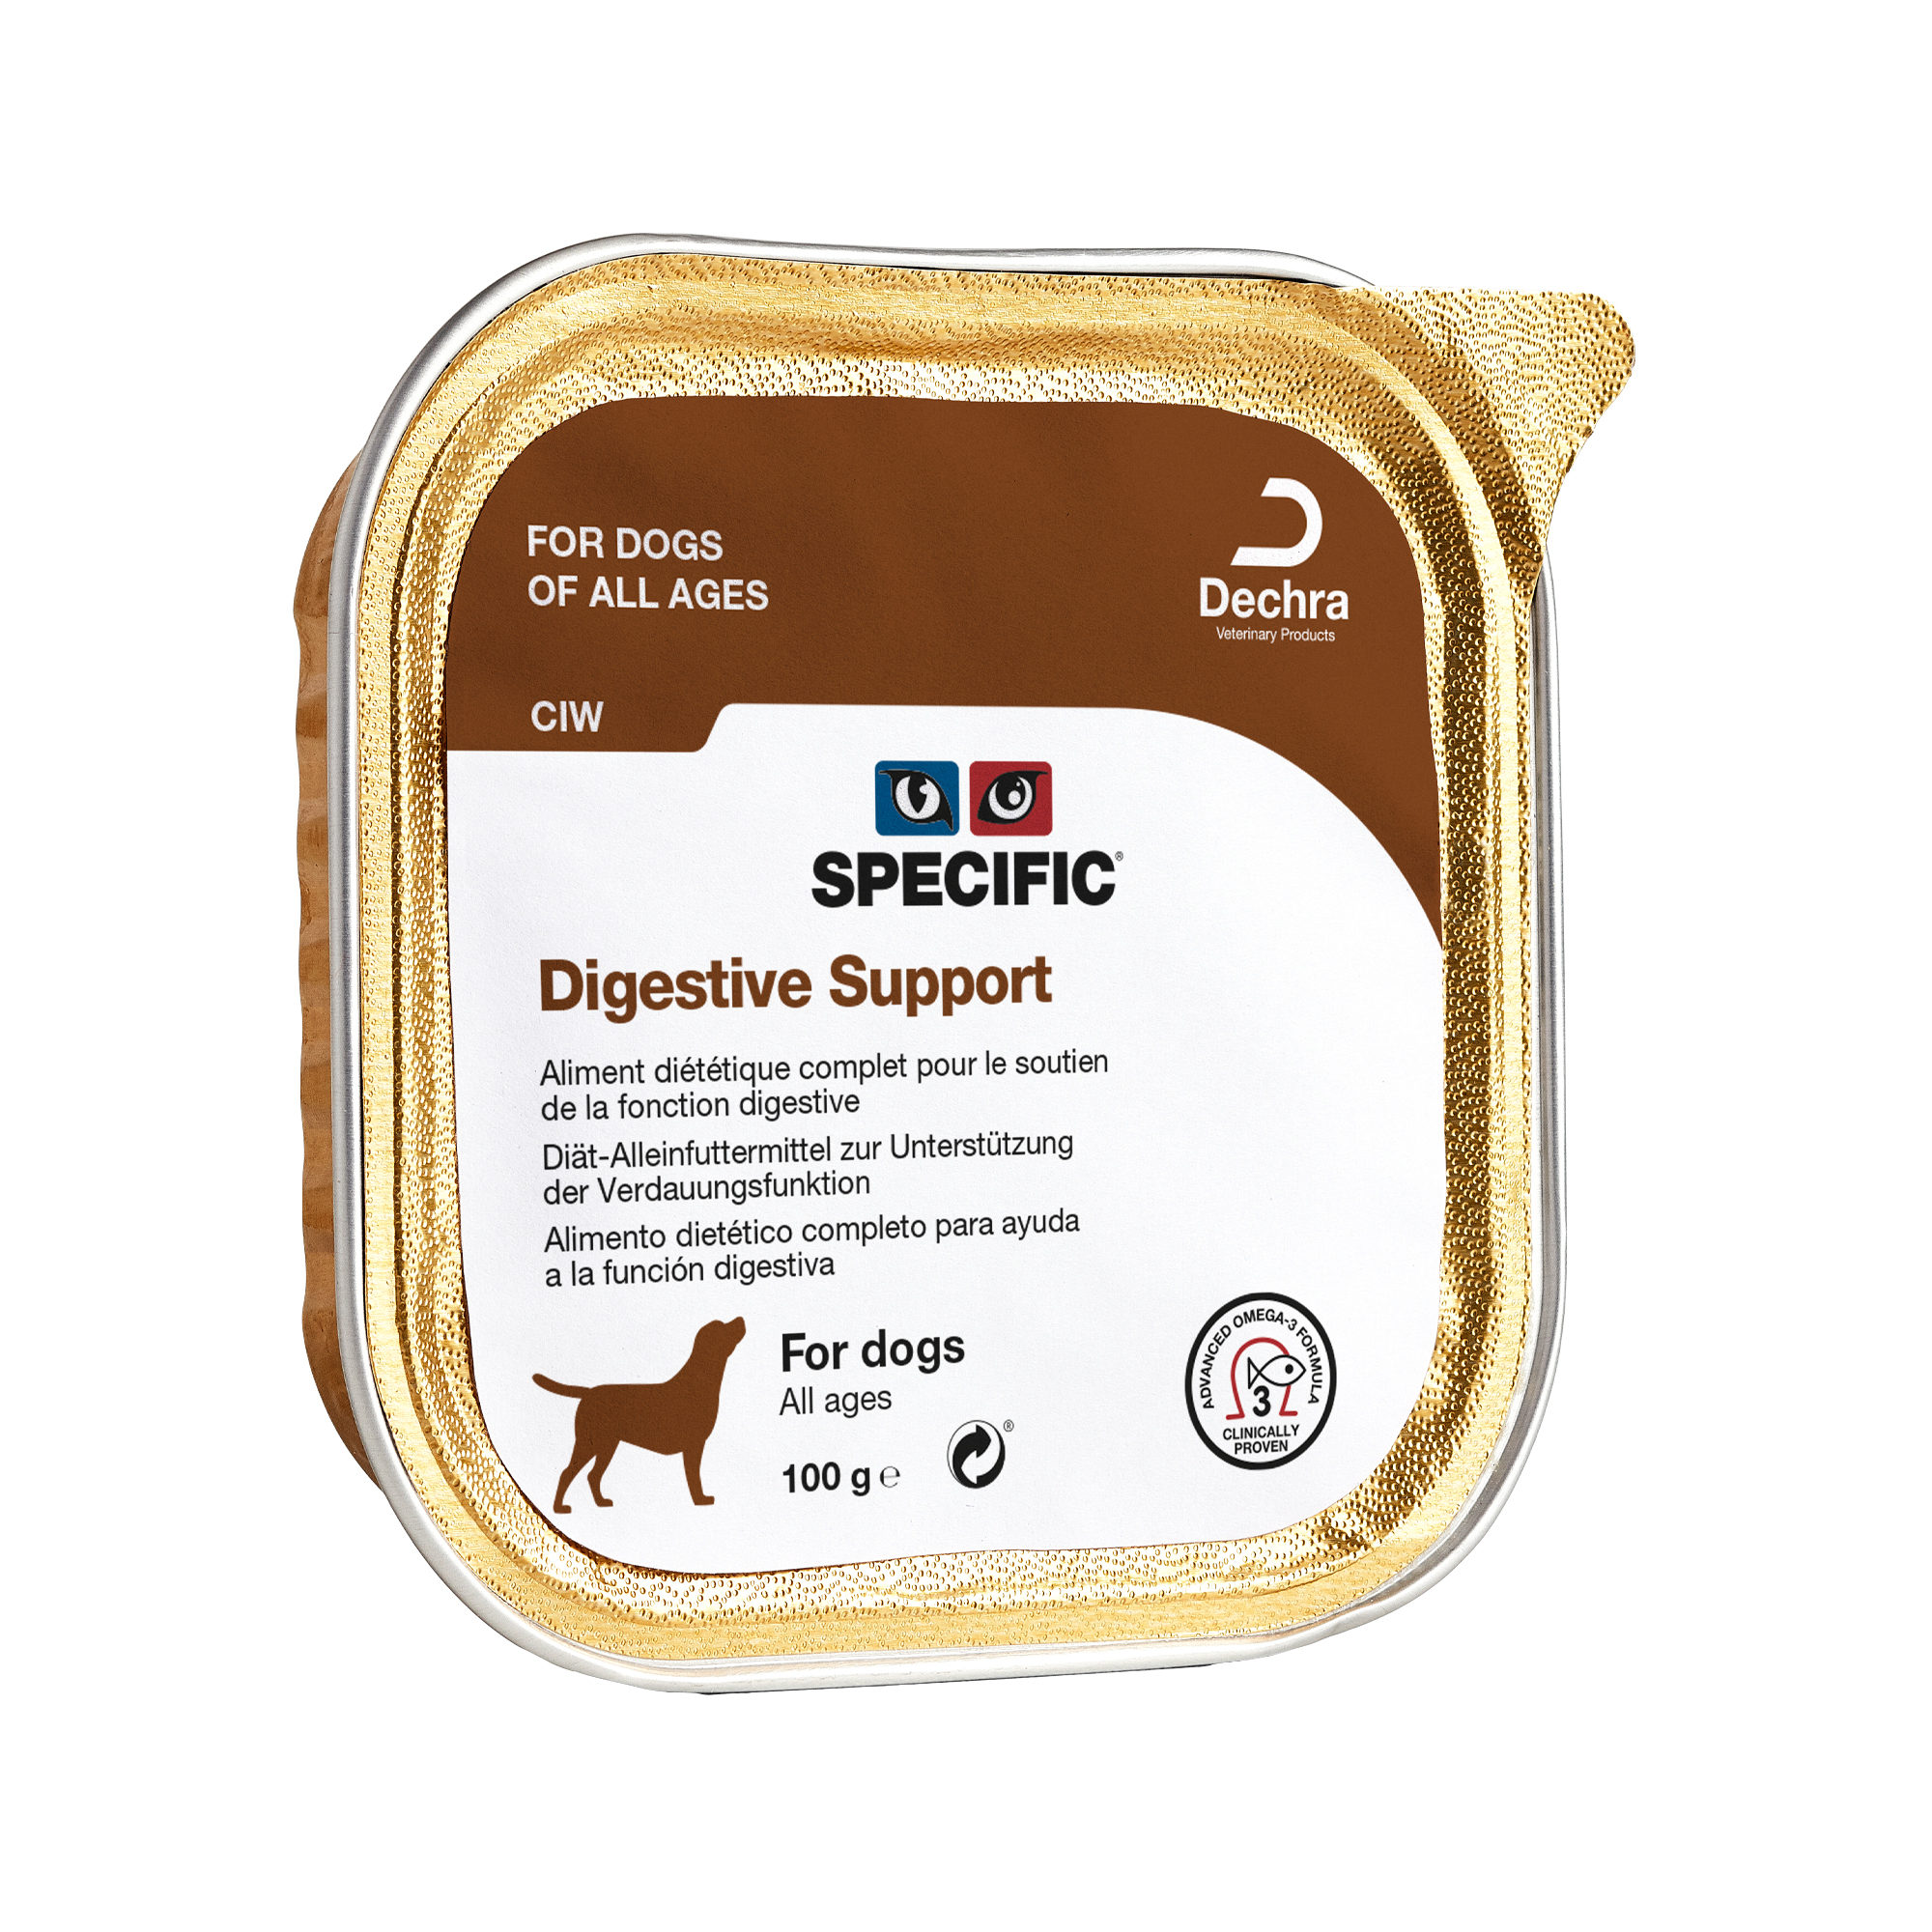 SPECIFIC Digestive Support CIW - Barquette